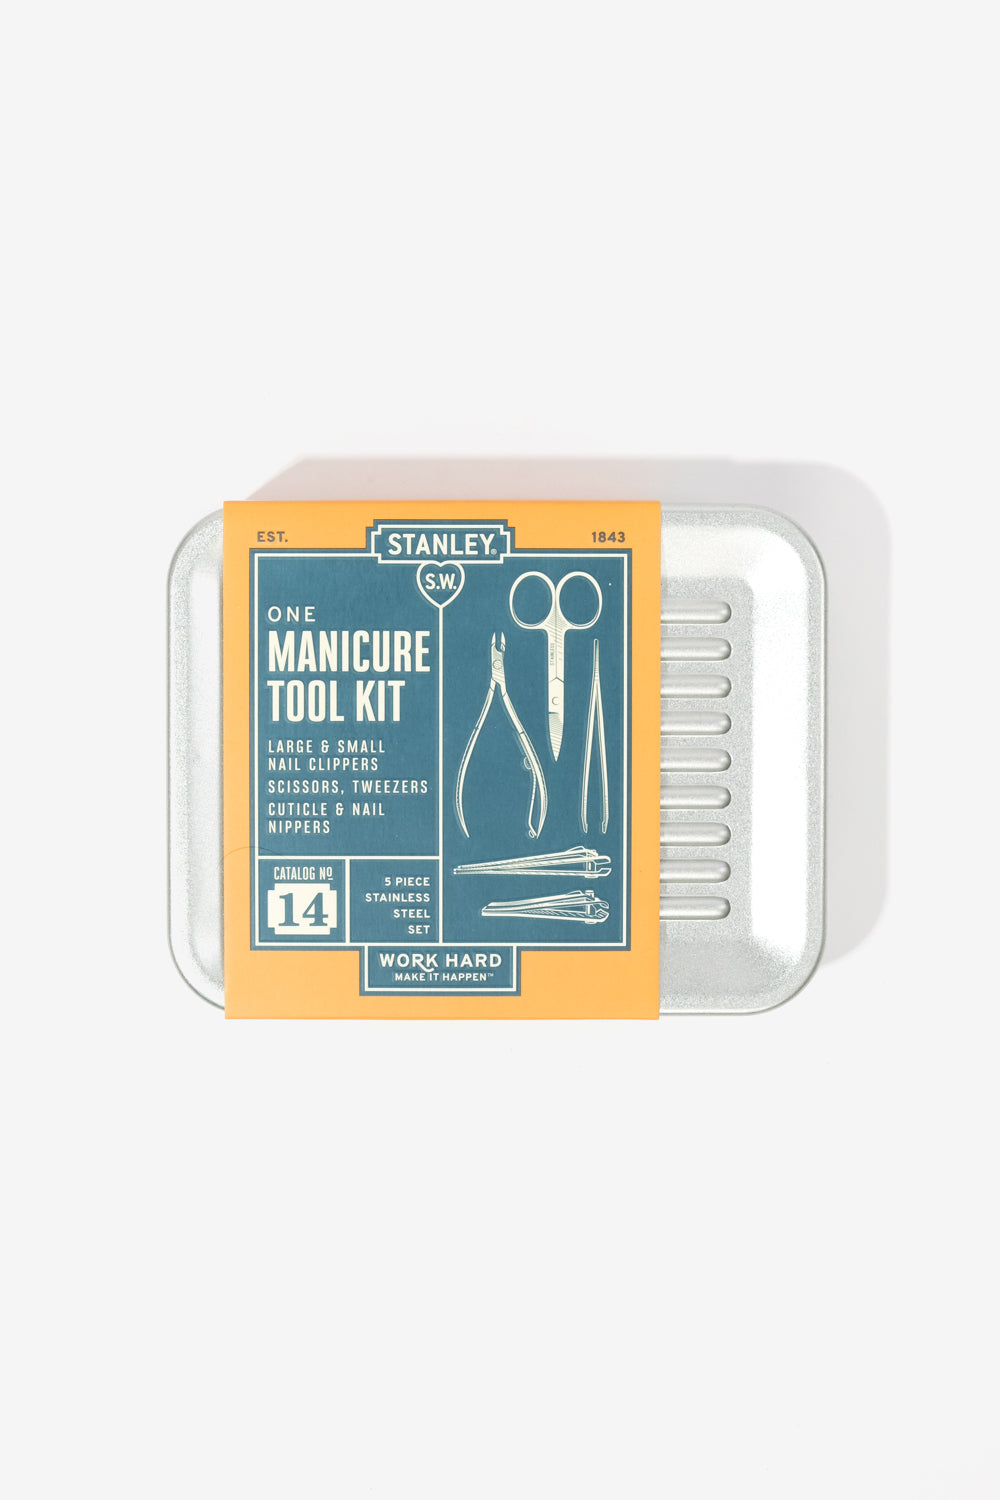 Manicure Tools in Tin, Gifts, Stanley - Six and Sons